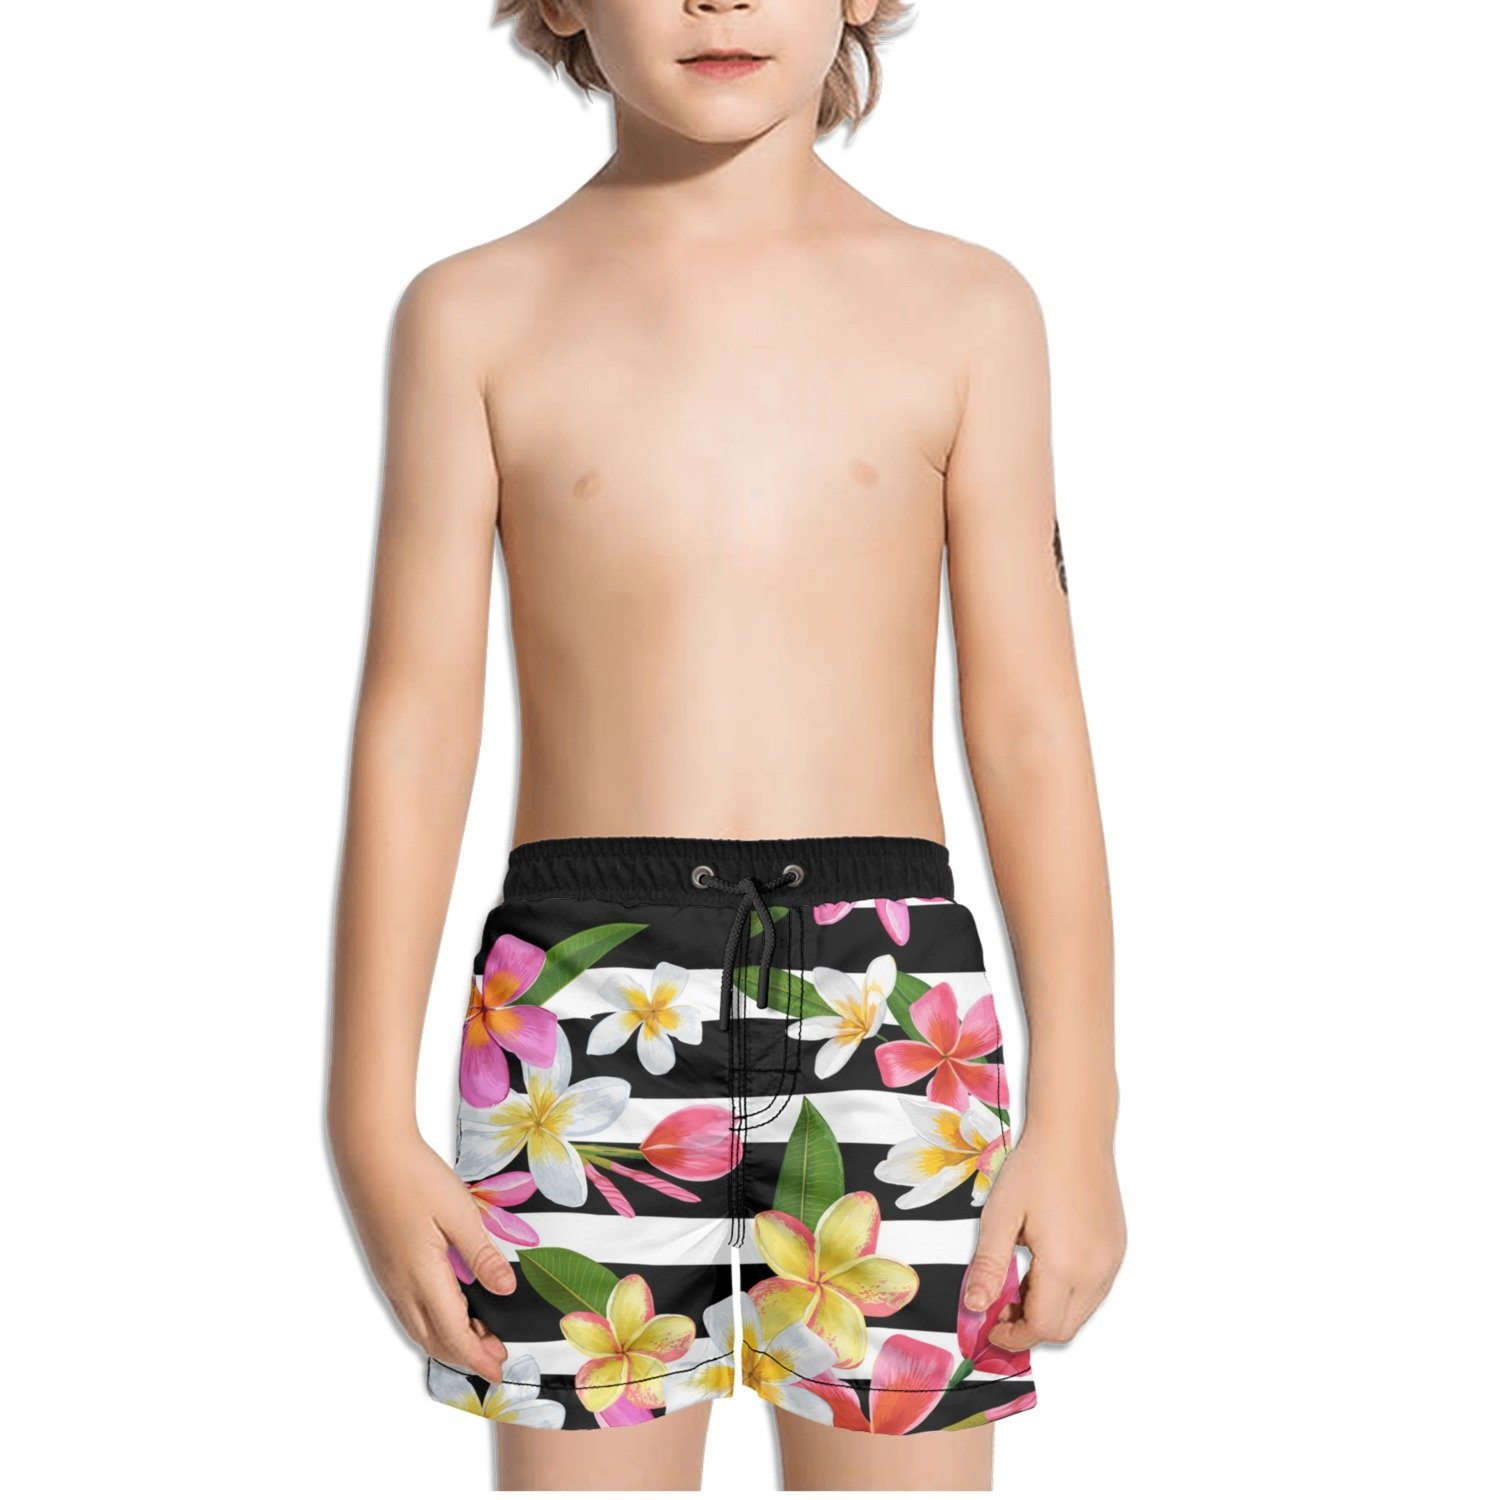 Ouxioaz Boys Swim Trunk Tropical Flower Palm Leaves Beach Board Shorts